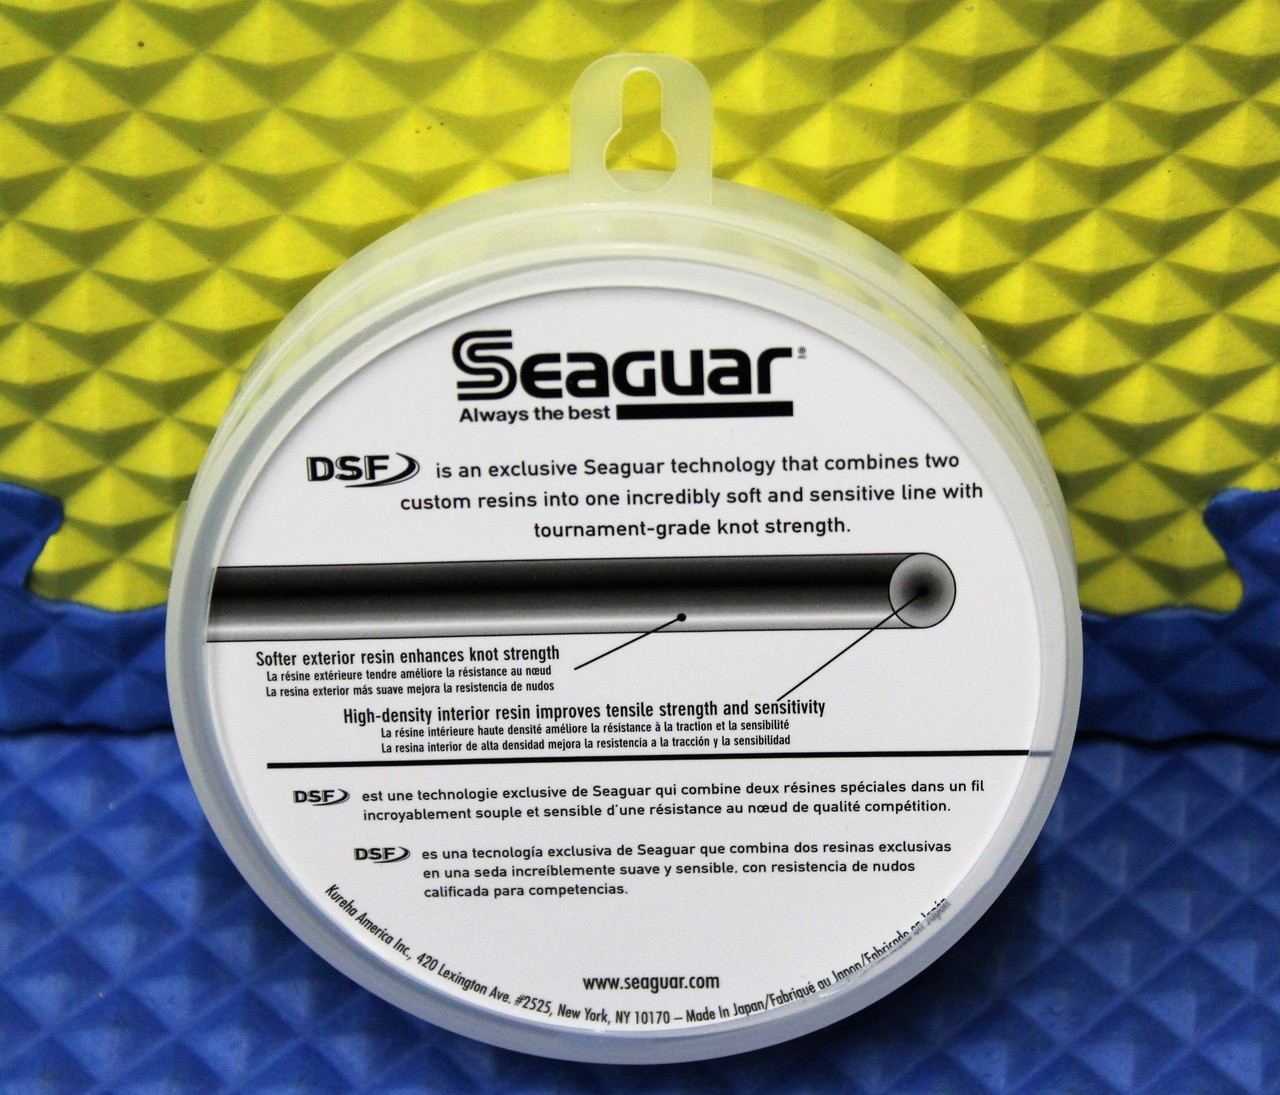 Seaguar Original Blue Label 100% Fluorocarbon Leader Material CHOOSE YOUR MODEL!